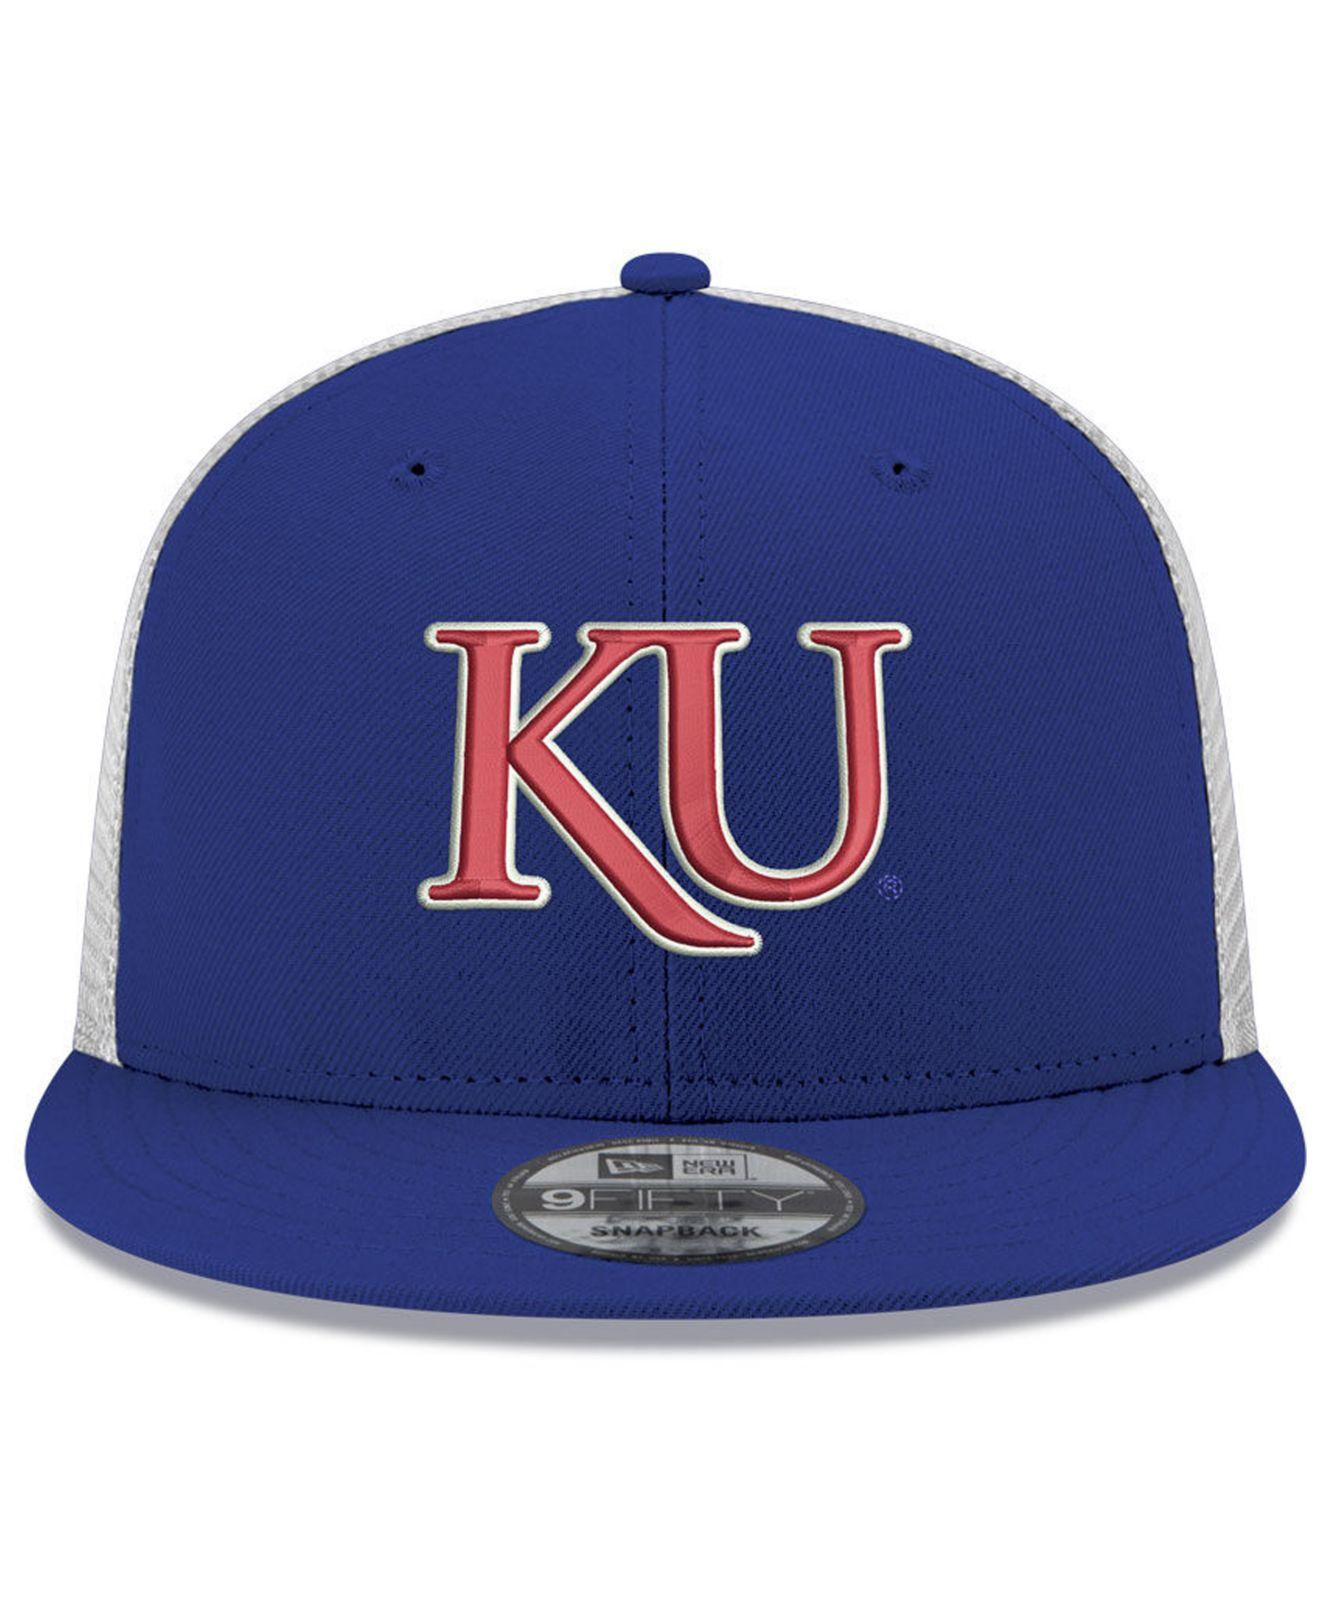 5780d018c45 Lyst - KTZ Kansas Jayhawks Tc Meshback Snapback Cap in Blue for Men